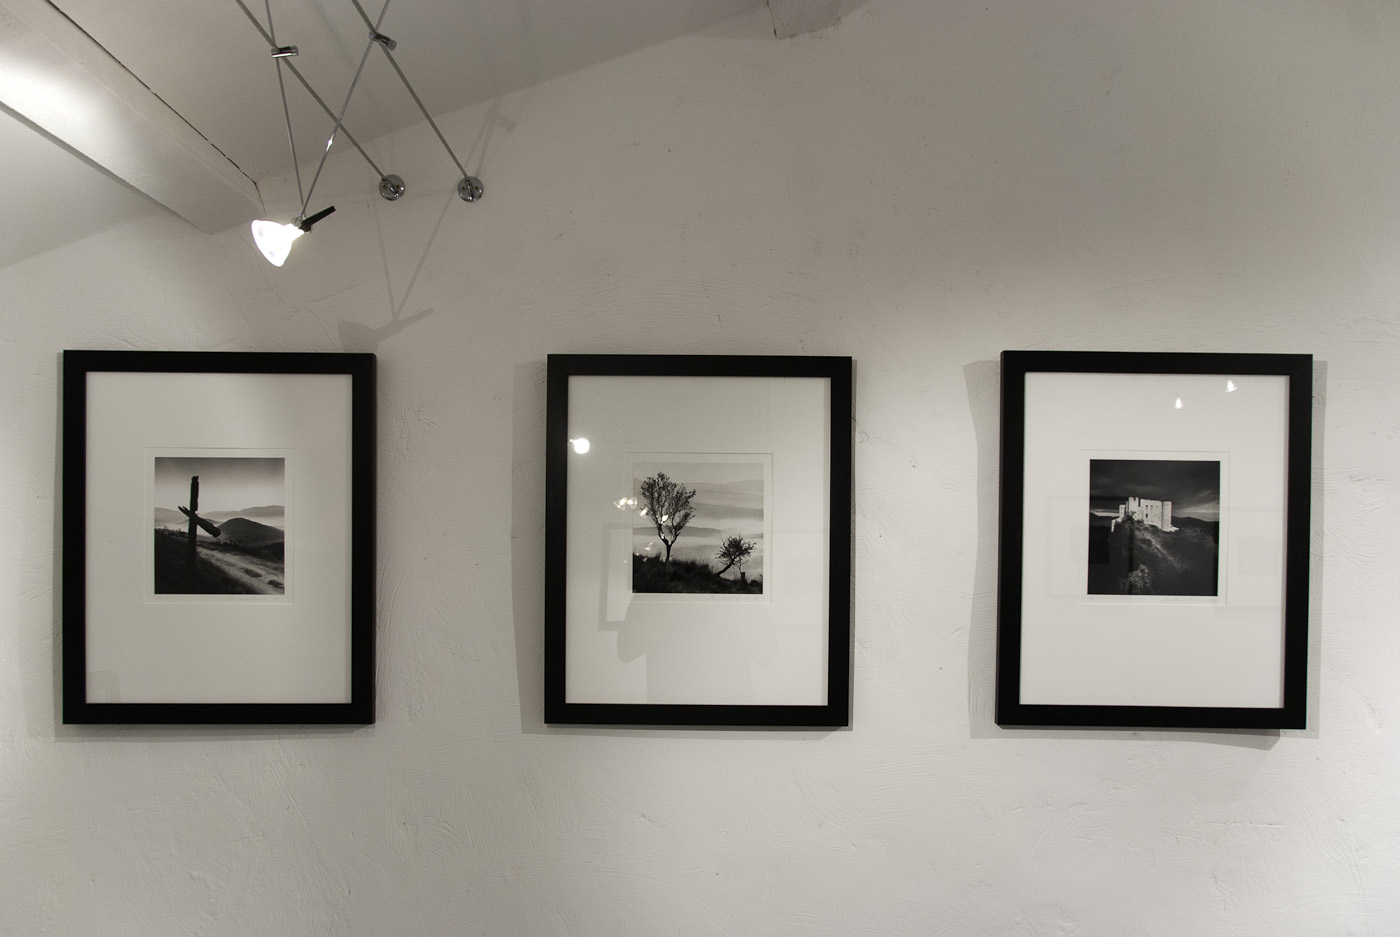 Three prints from the Michael Kenna exhbition, Bargeme